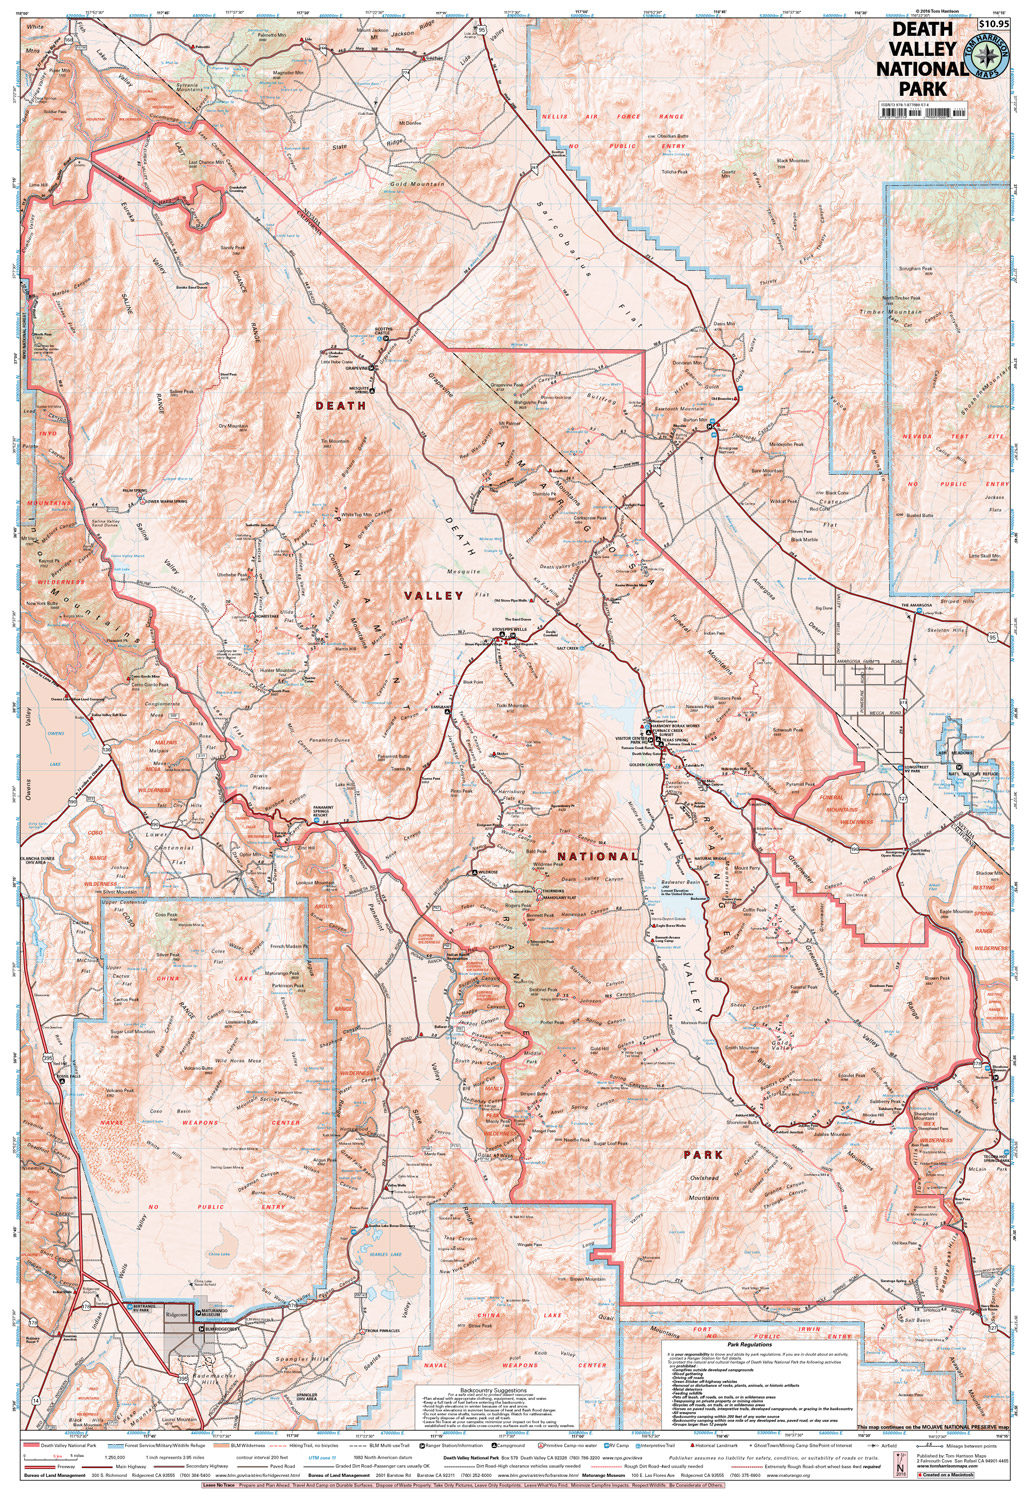 Valley Nat'l Park on desert map, canyon map, cape map, plain map, bight map, olneyville map, aged map, canal map, delta map, channel map, atlas mountains map, kathmandu nepal map, fjord map, volcano map, boaz map, peninsula map, river map, gulf map, tributary map, sipsey map,